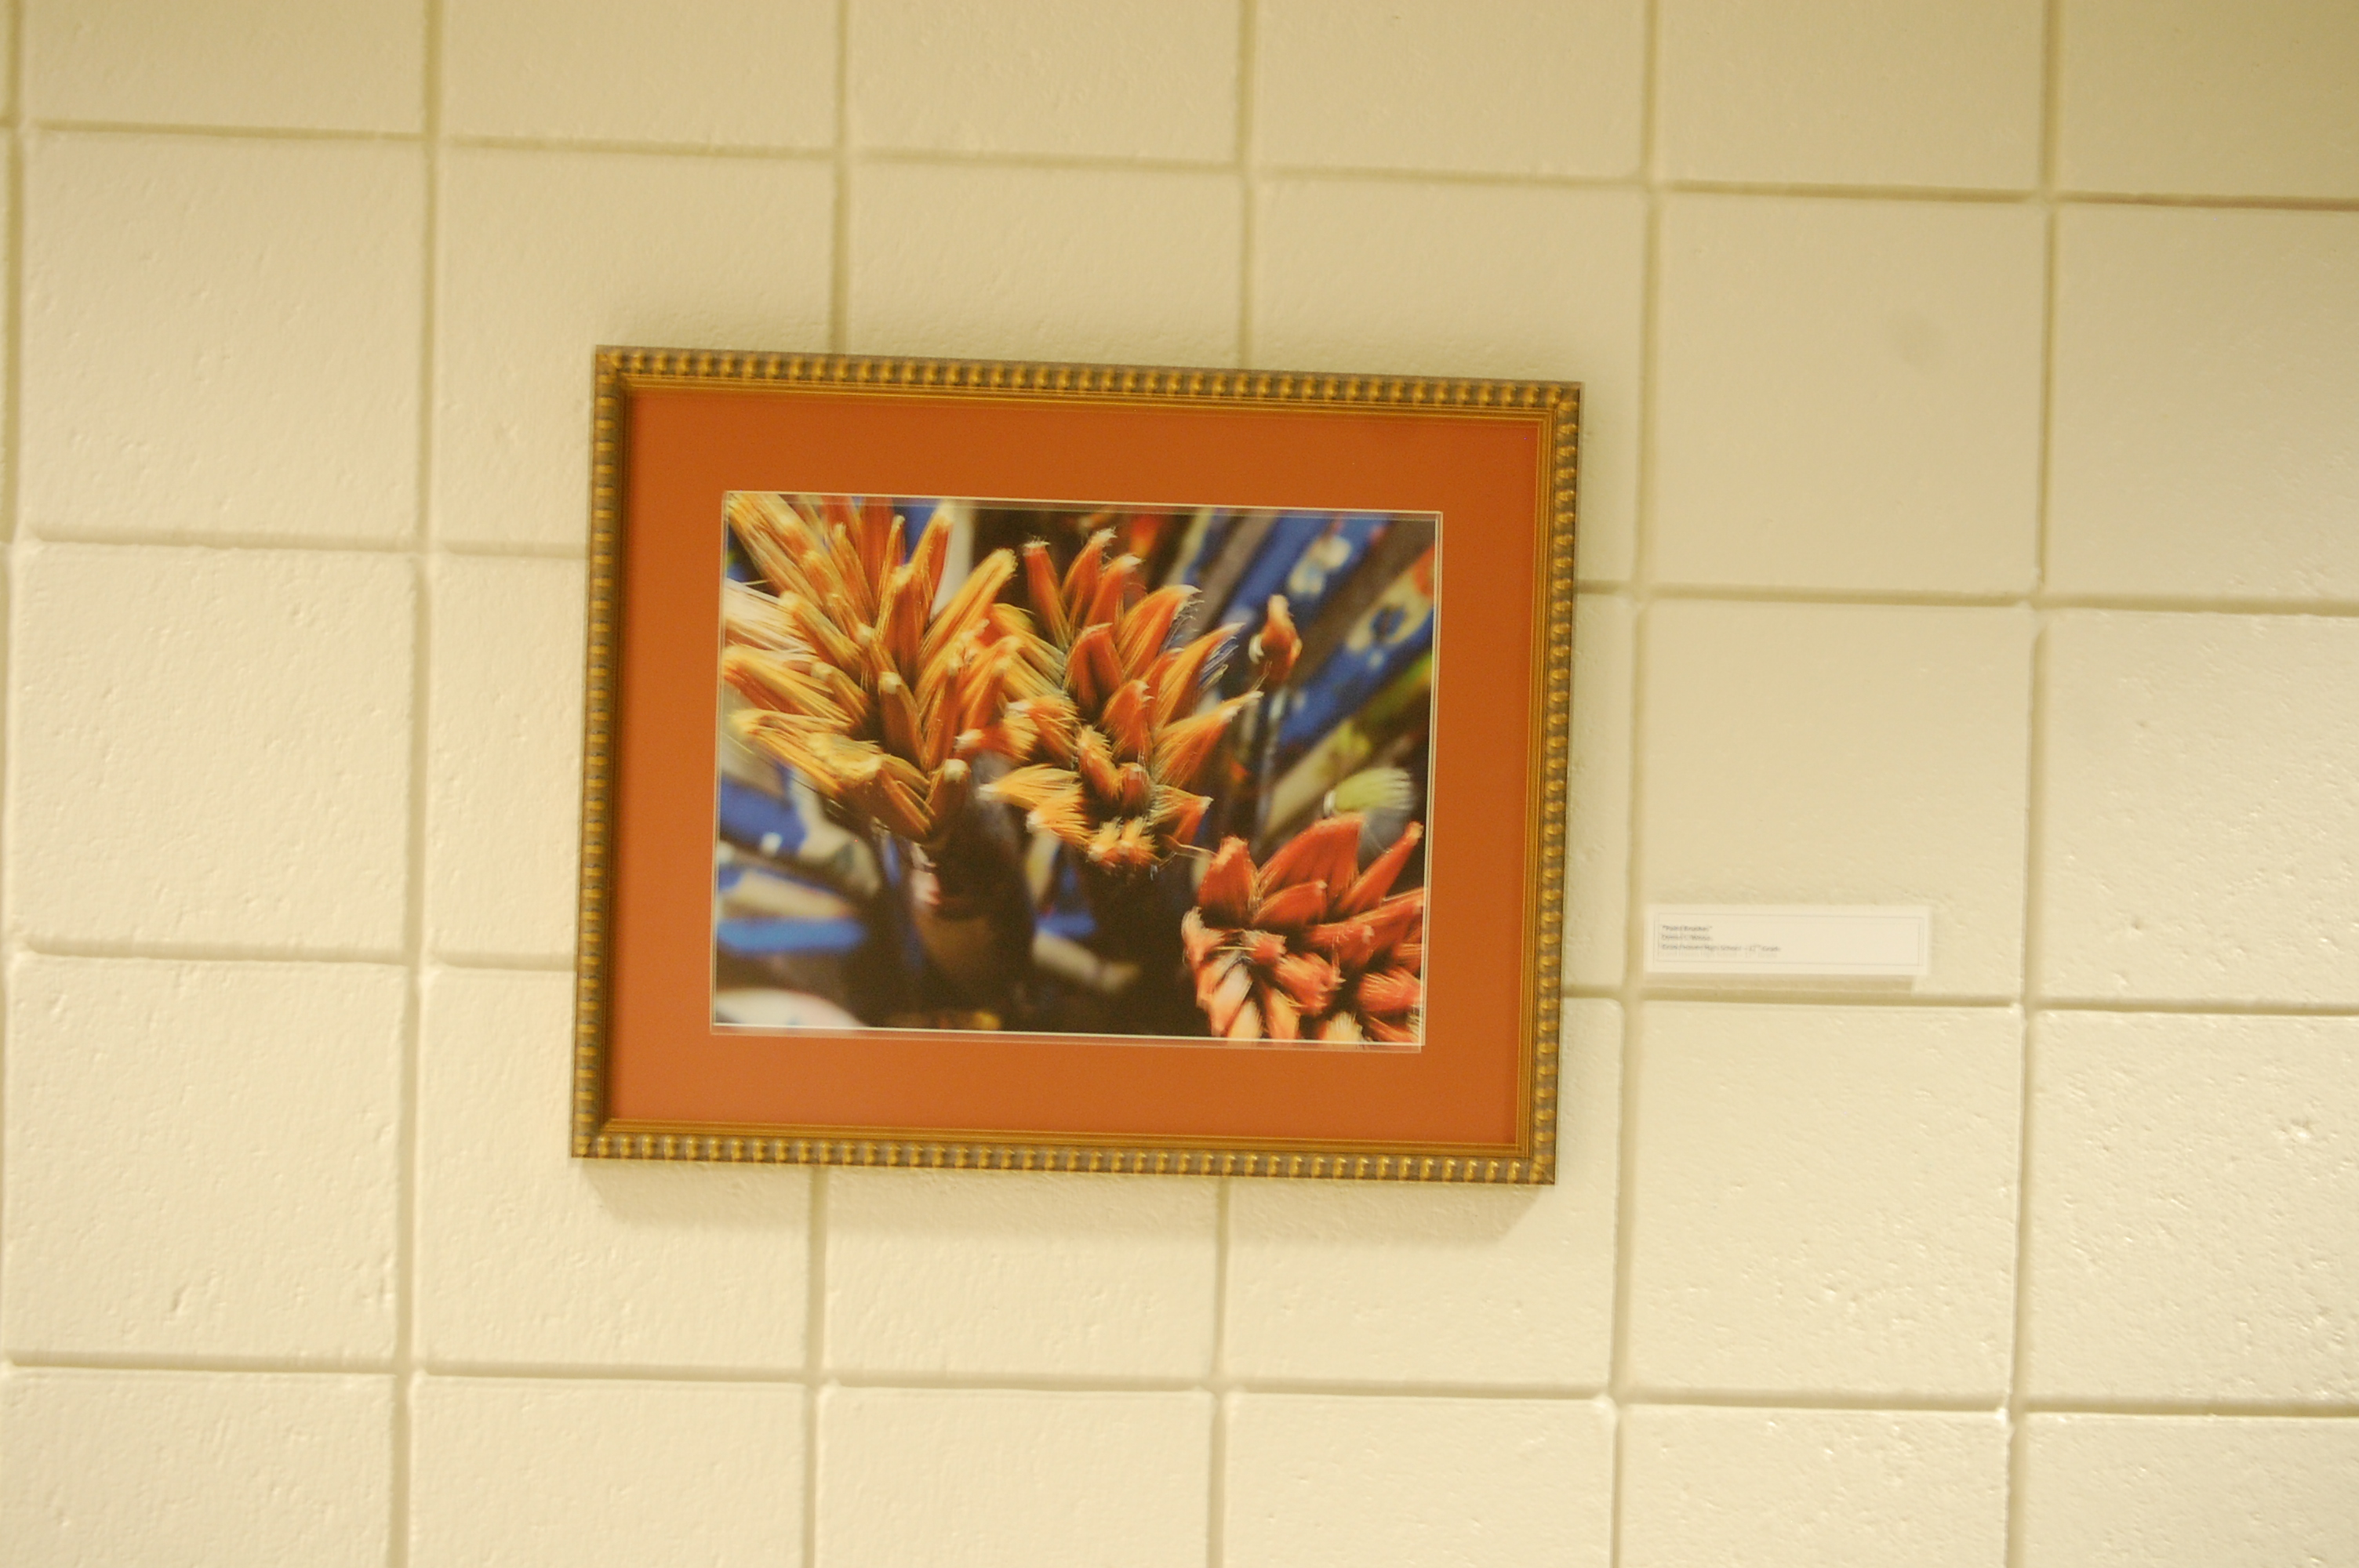 OAISD Images Framing Completed and Hung – Dreese Fine Art & Framing